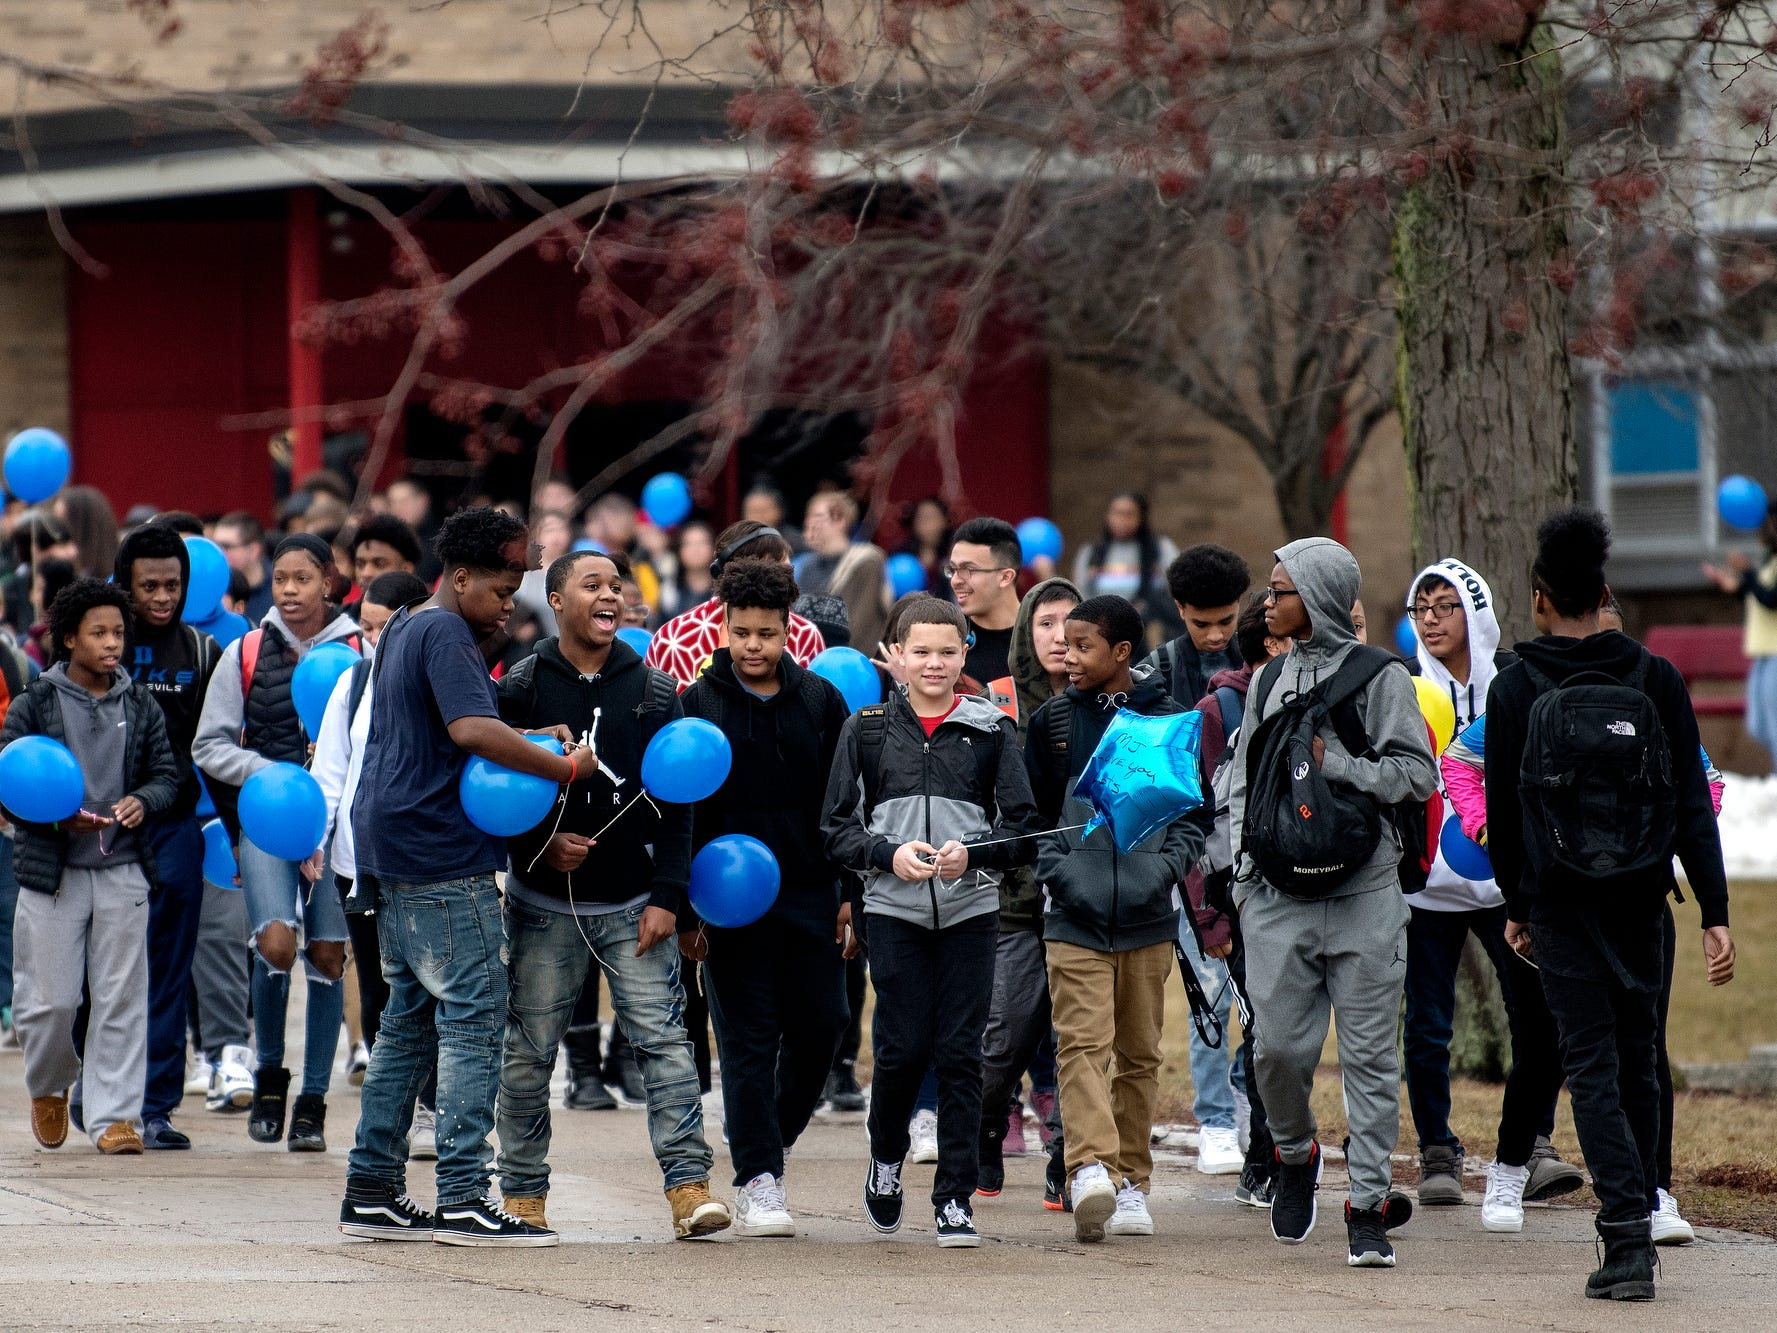 Students walk from the front of the school to the football field to release balloons in honor of fellow student 8th-grader Michael Martin at Everett New Tech High School on Monday, Feb. 4, 2019, in Lansing. Michael, 13, died Jan. 25, at Sparrow Hospital, two days after attempting suicide in his home. Joanna Wohlfert, Michaels mother, said her son had endured months of bullying.